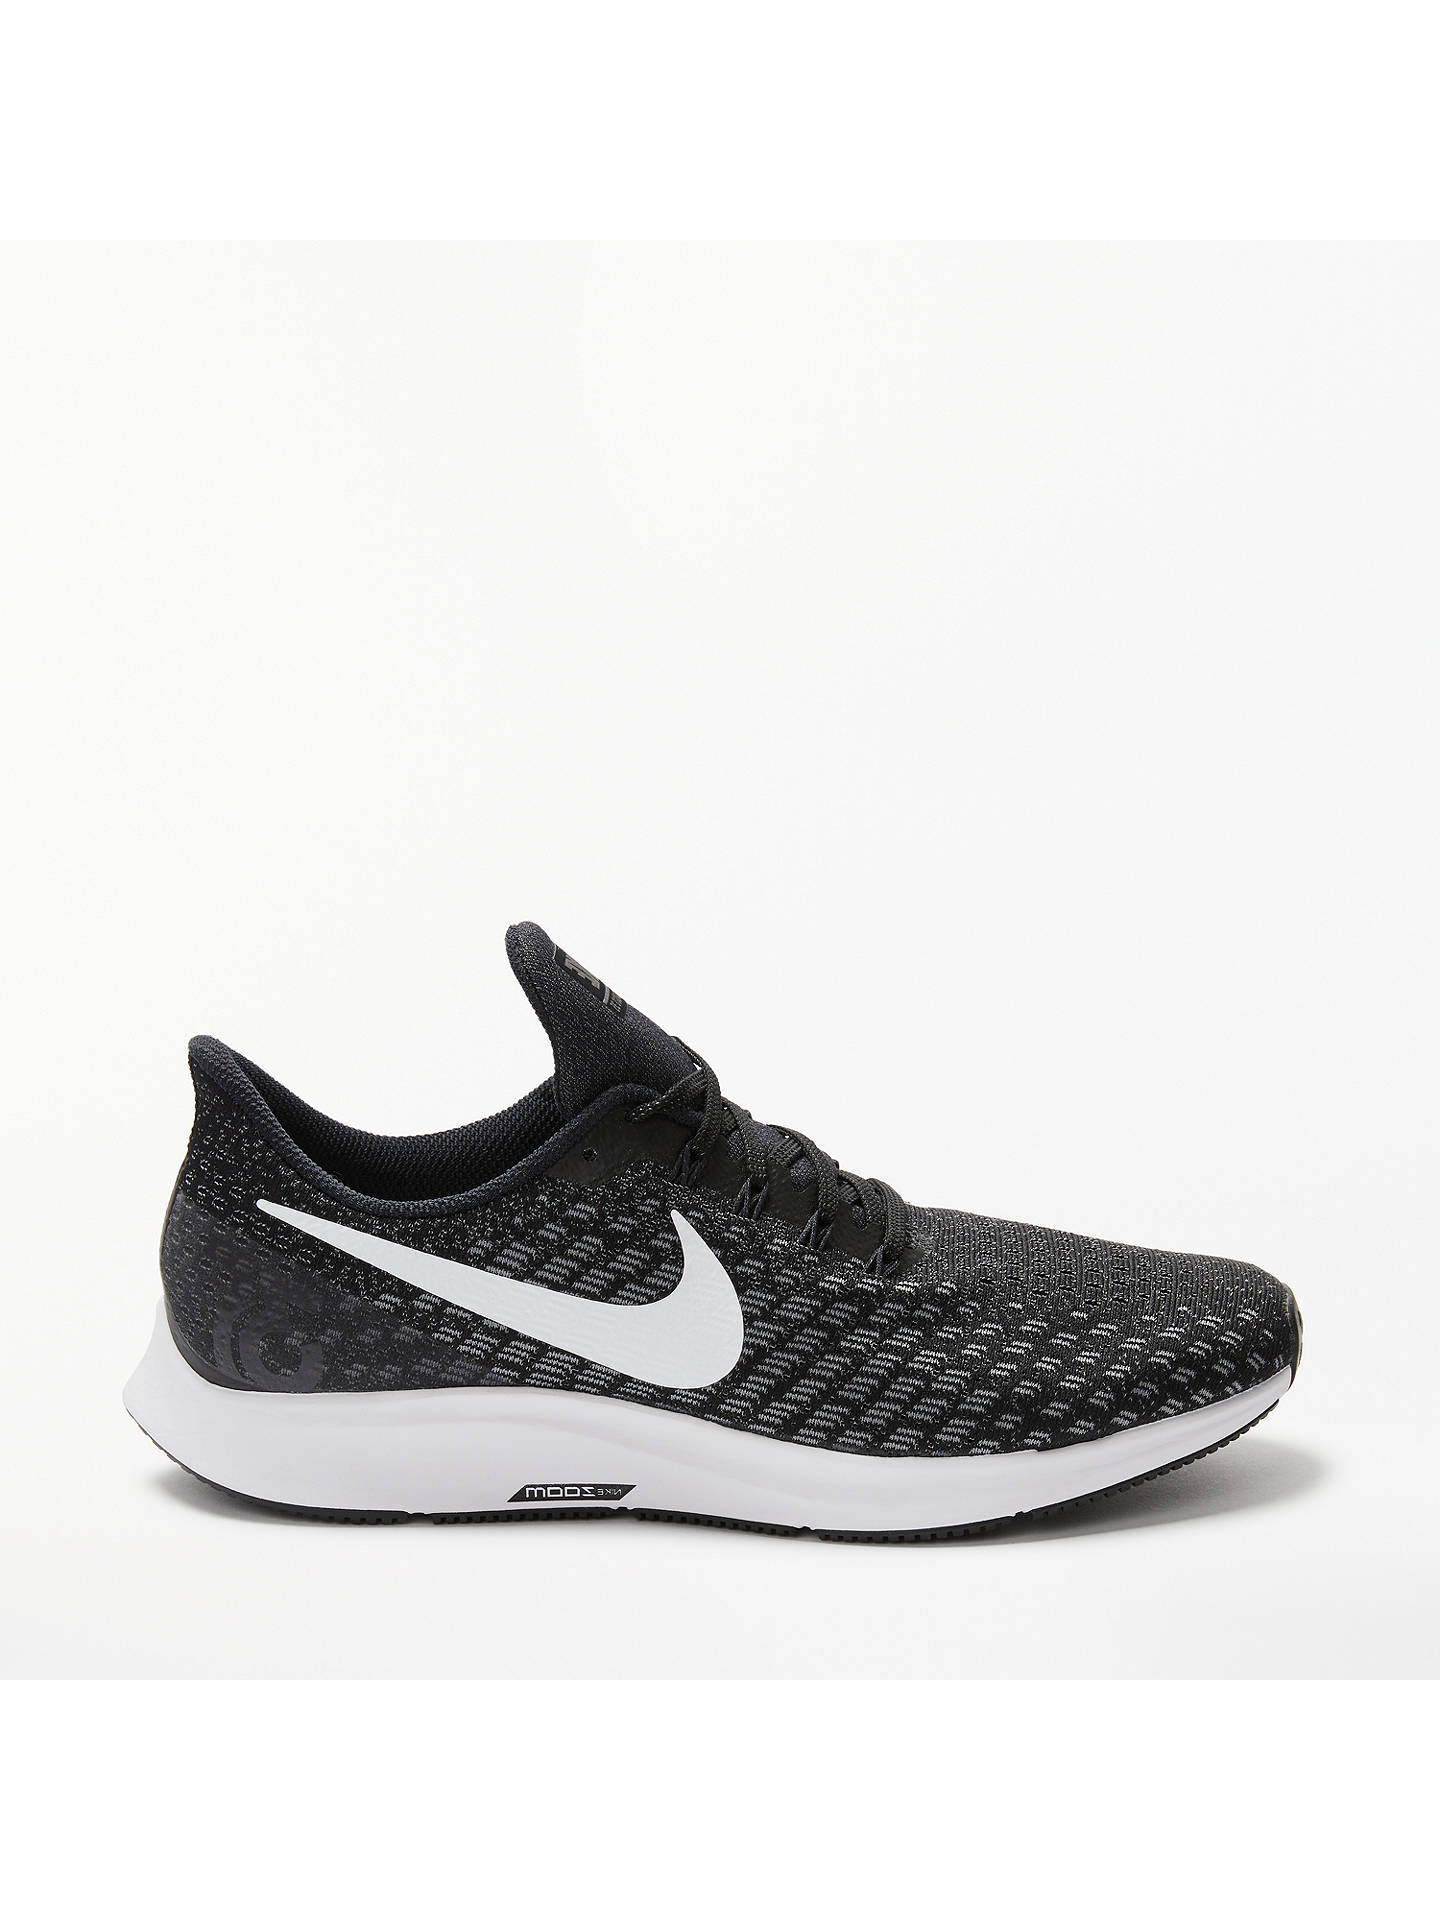 585dbfcf5f5ba Buy Nike Air Zoom Pegasus 35 Women s Running Shoes